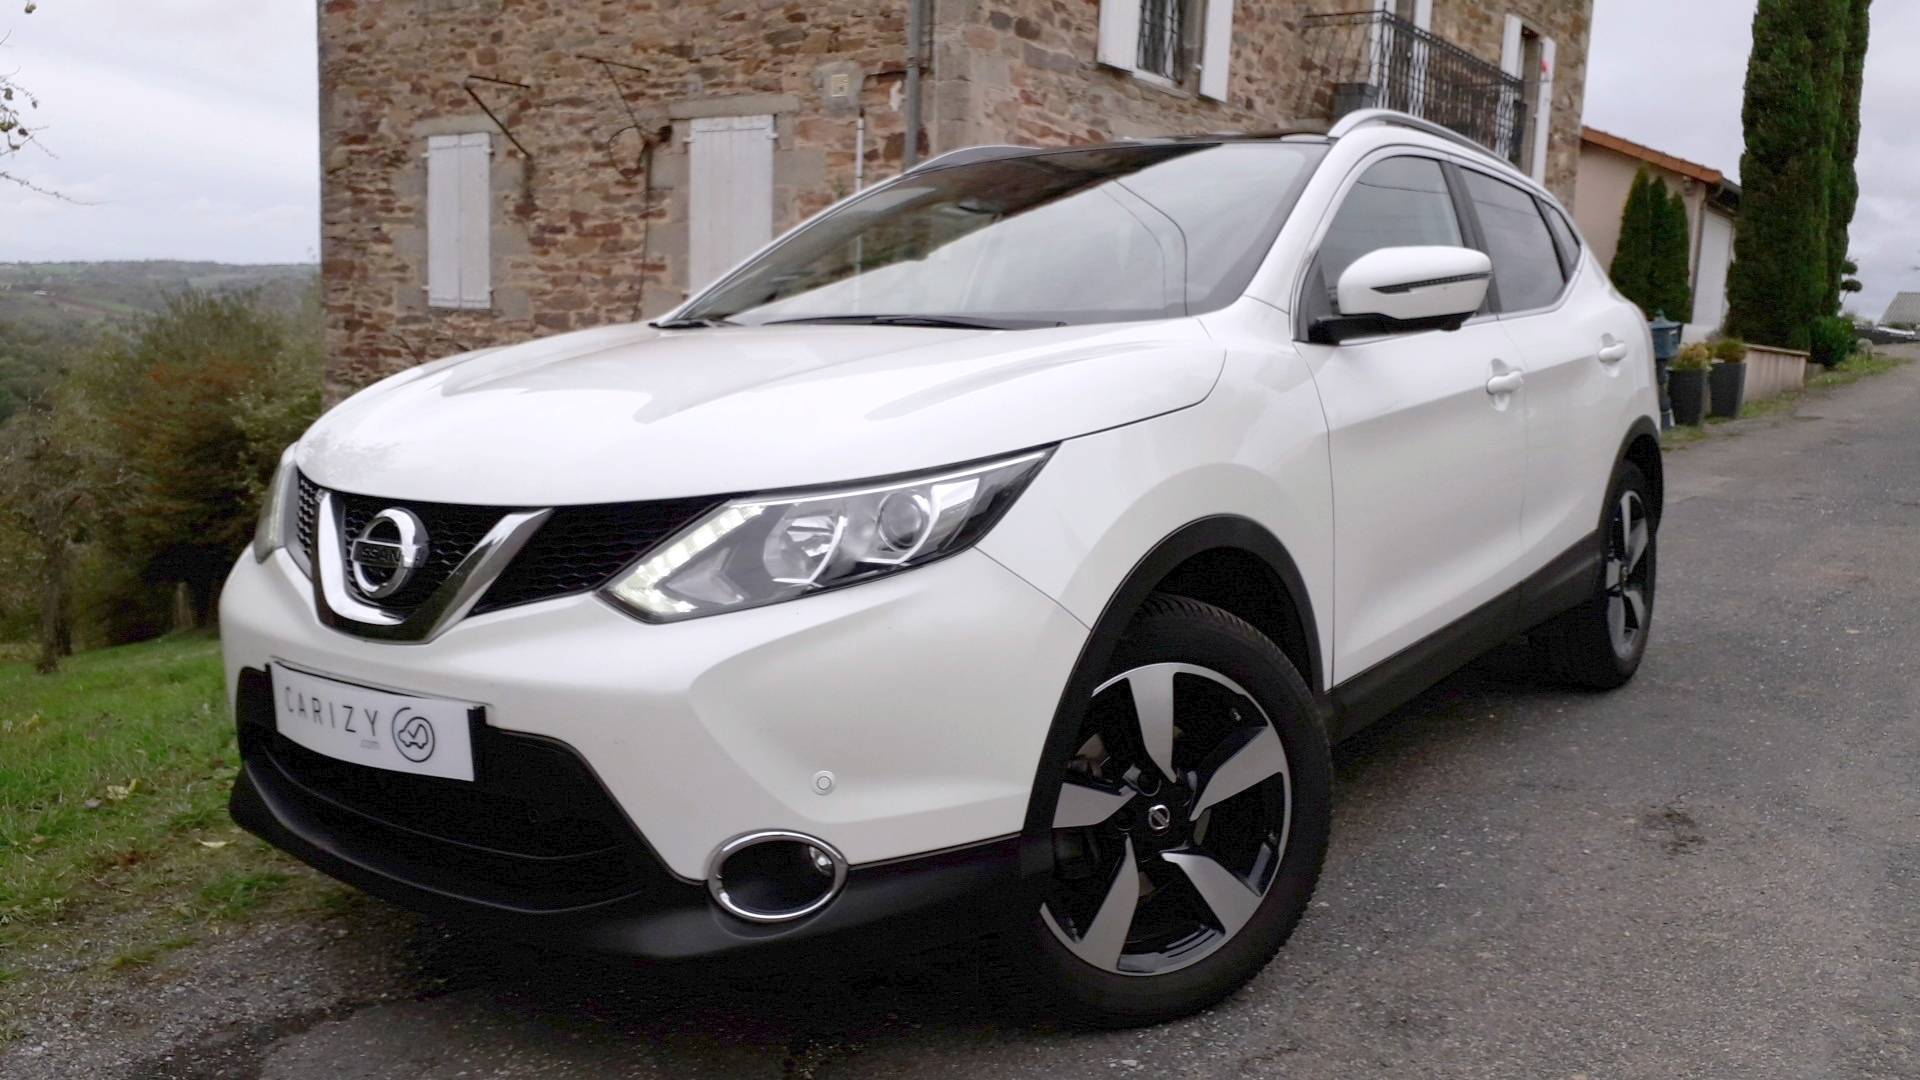 nissan qashqai d 39 occasion 1 5 dci 110 connect edition 2wd balsac carizy. Black Bedroom Furniture Sets. Home Design Ideas